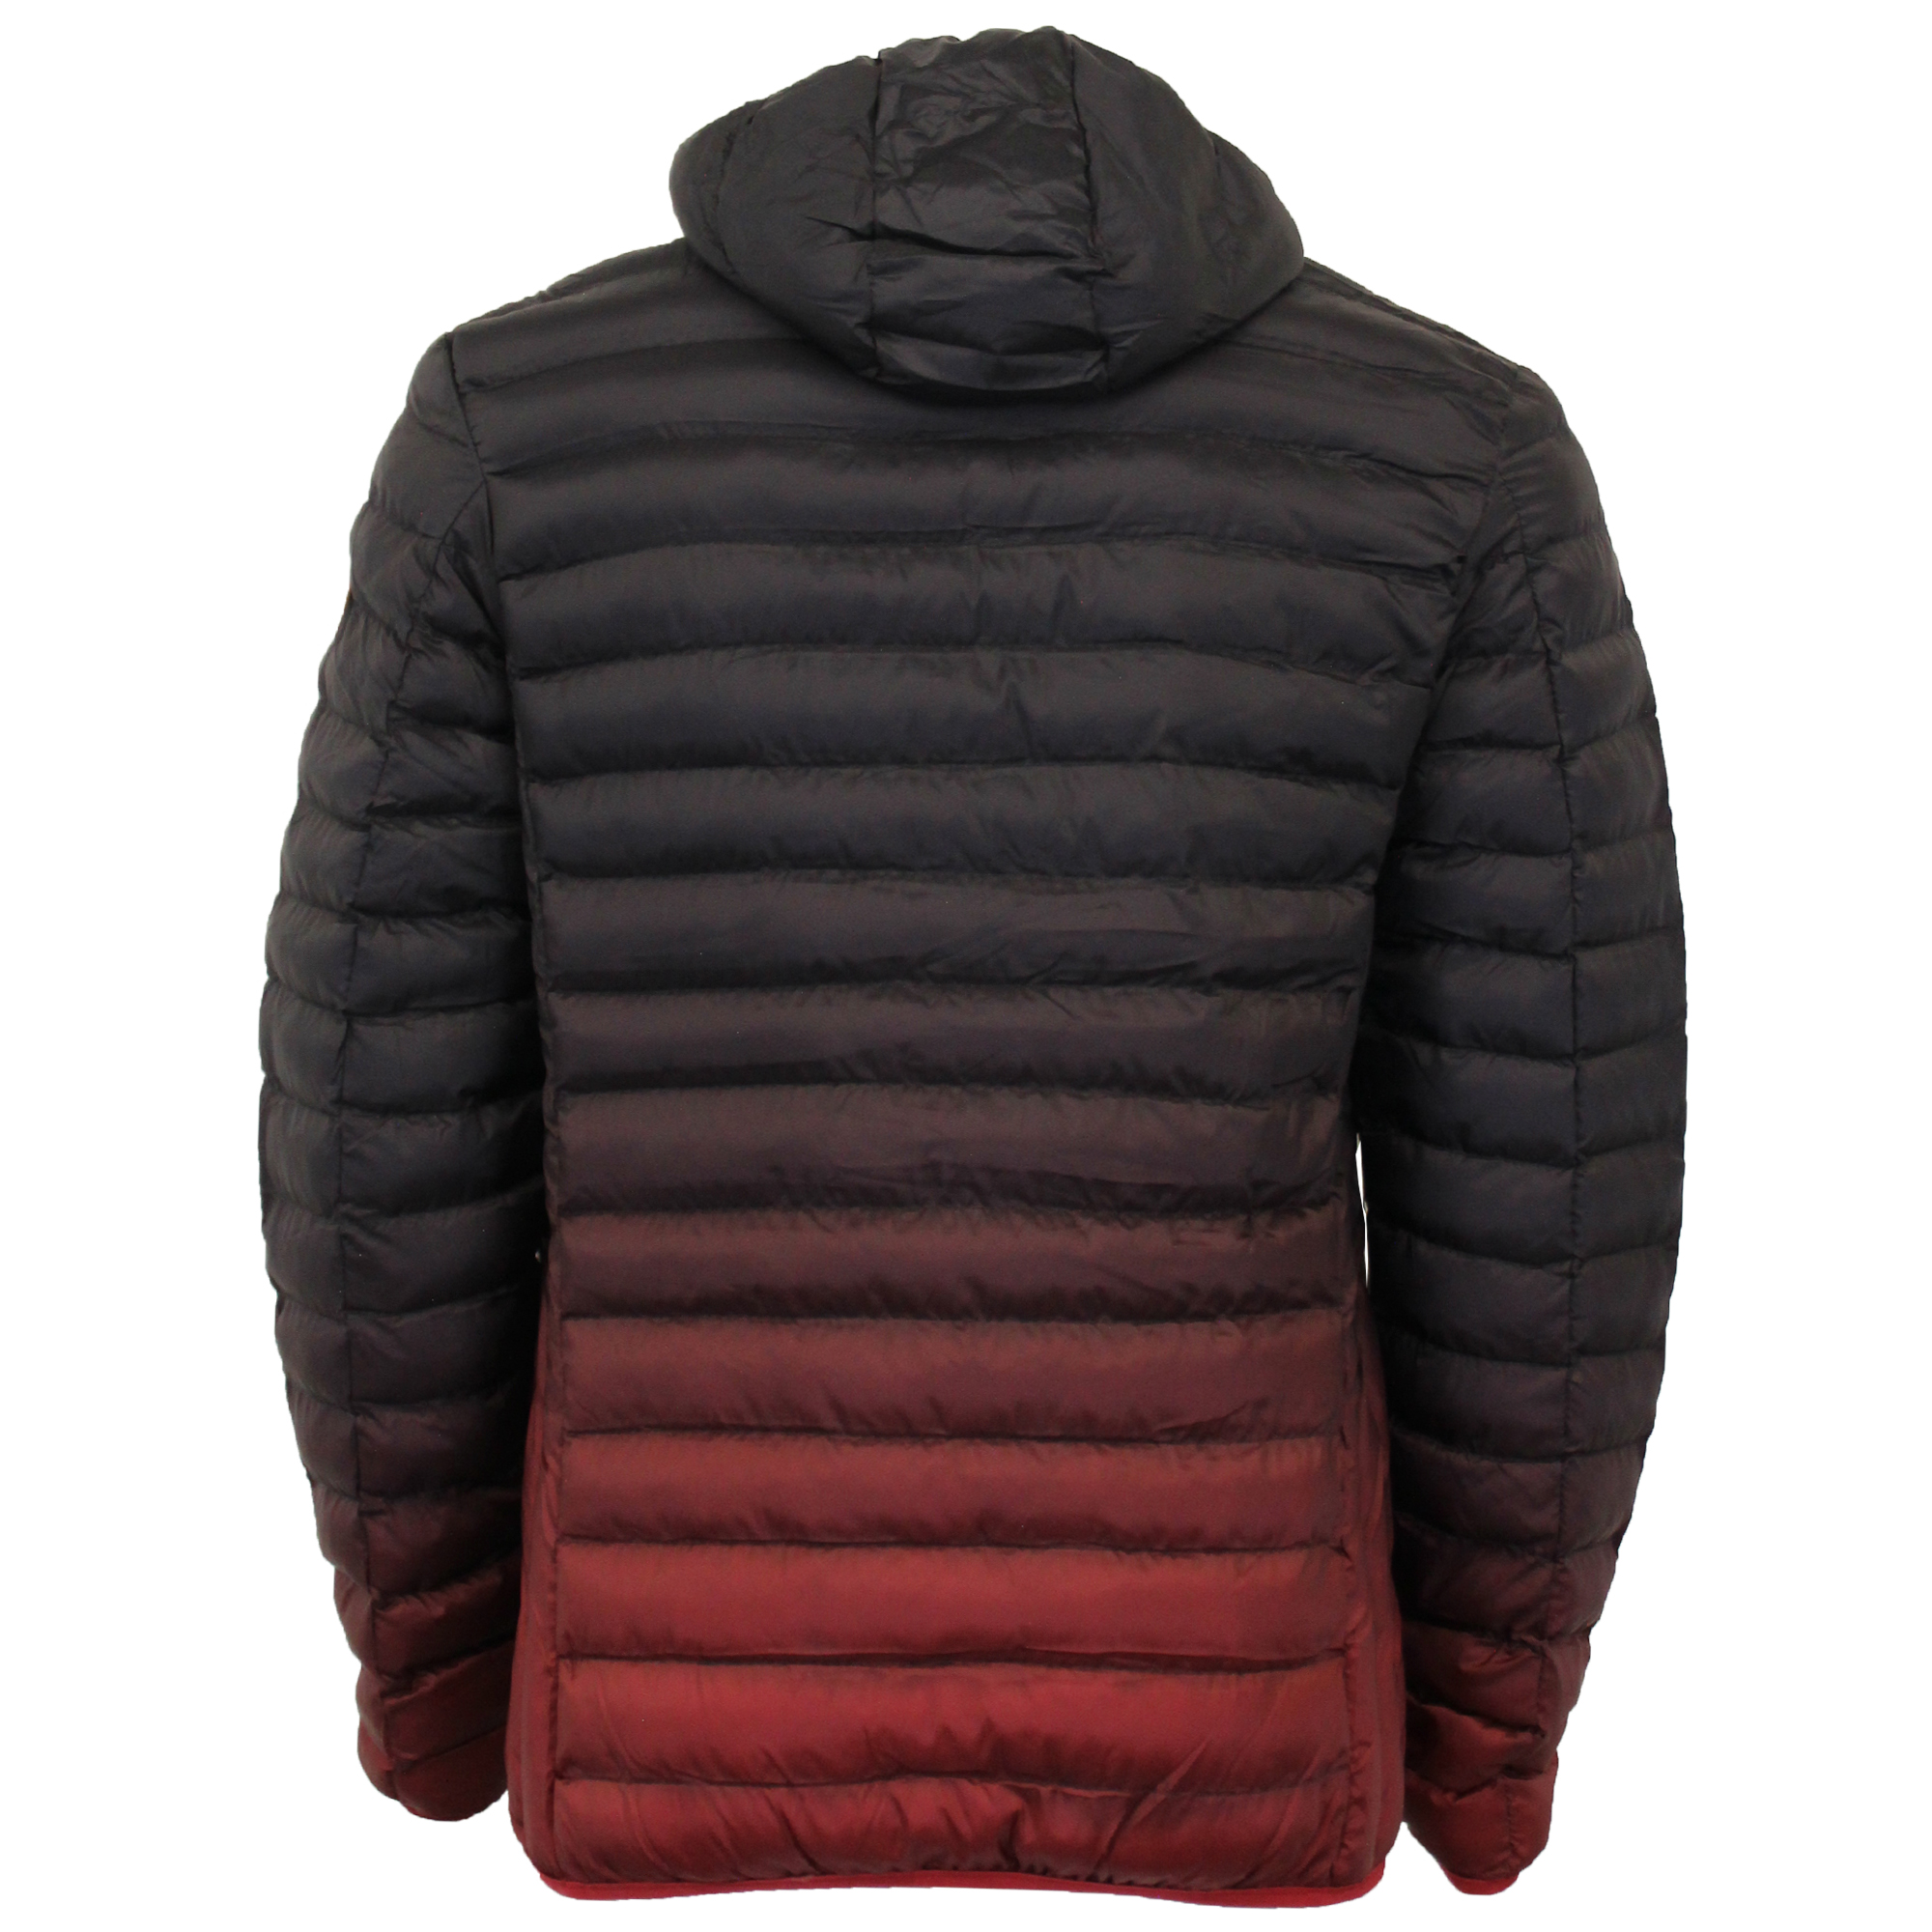 Mens-Jacket-Crosshatch-Hooded-Padded-Quilted-Two-Tone-FADEDOWN-Lined-Winter-New thumbnail 9